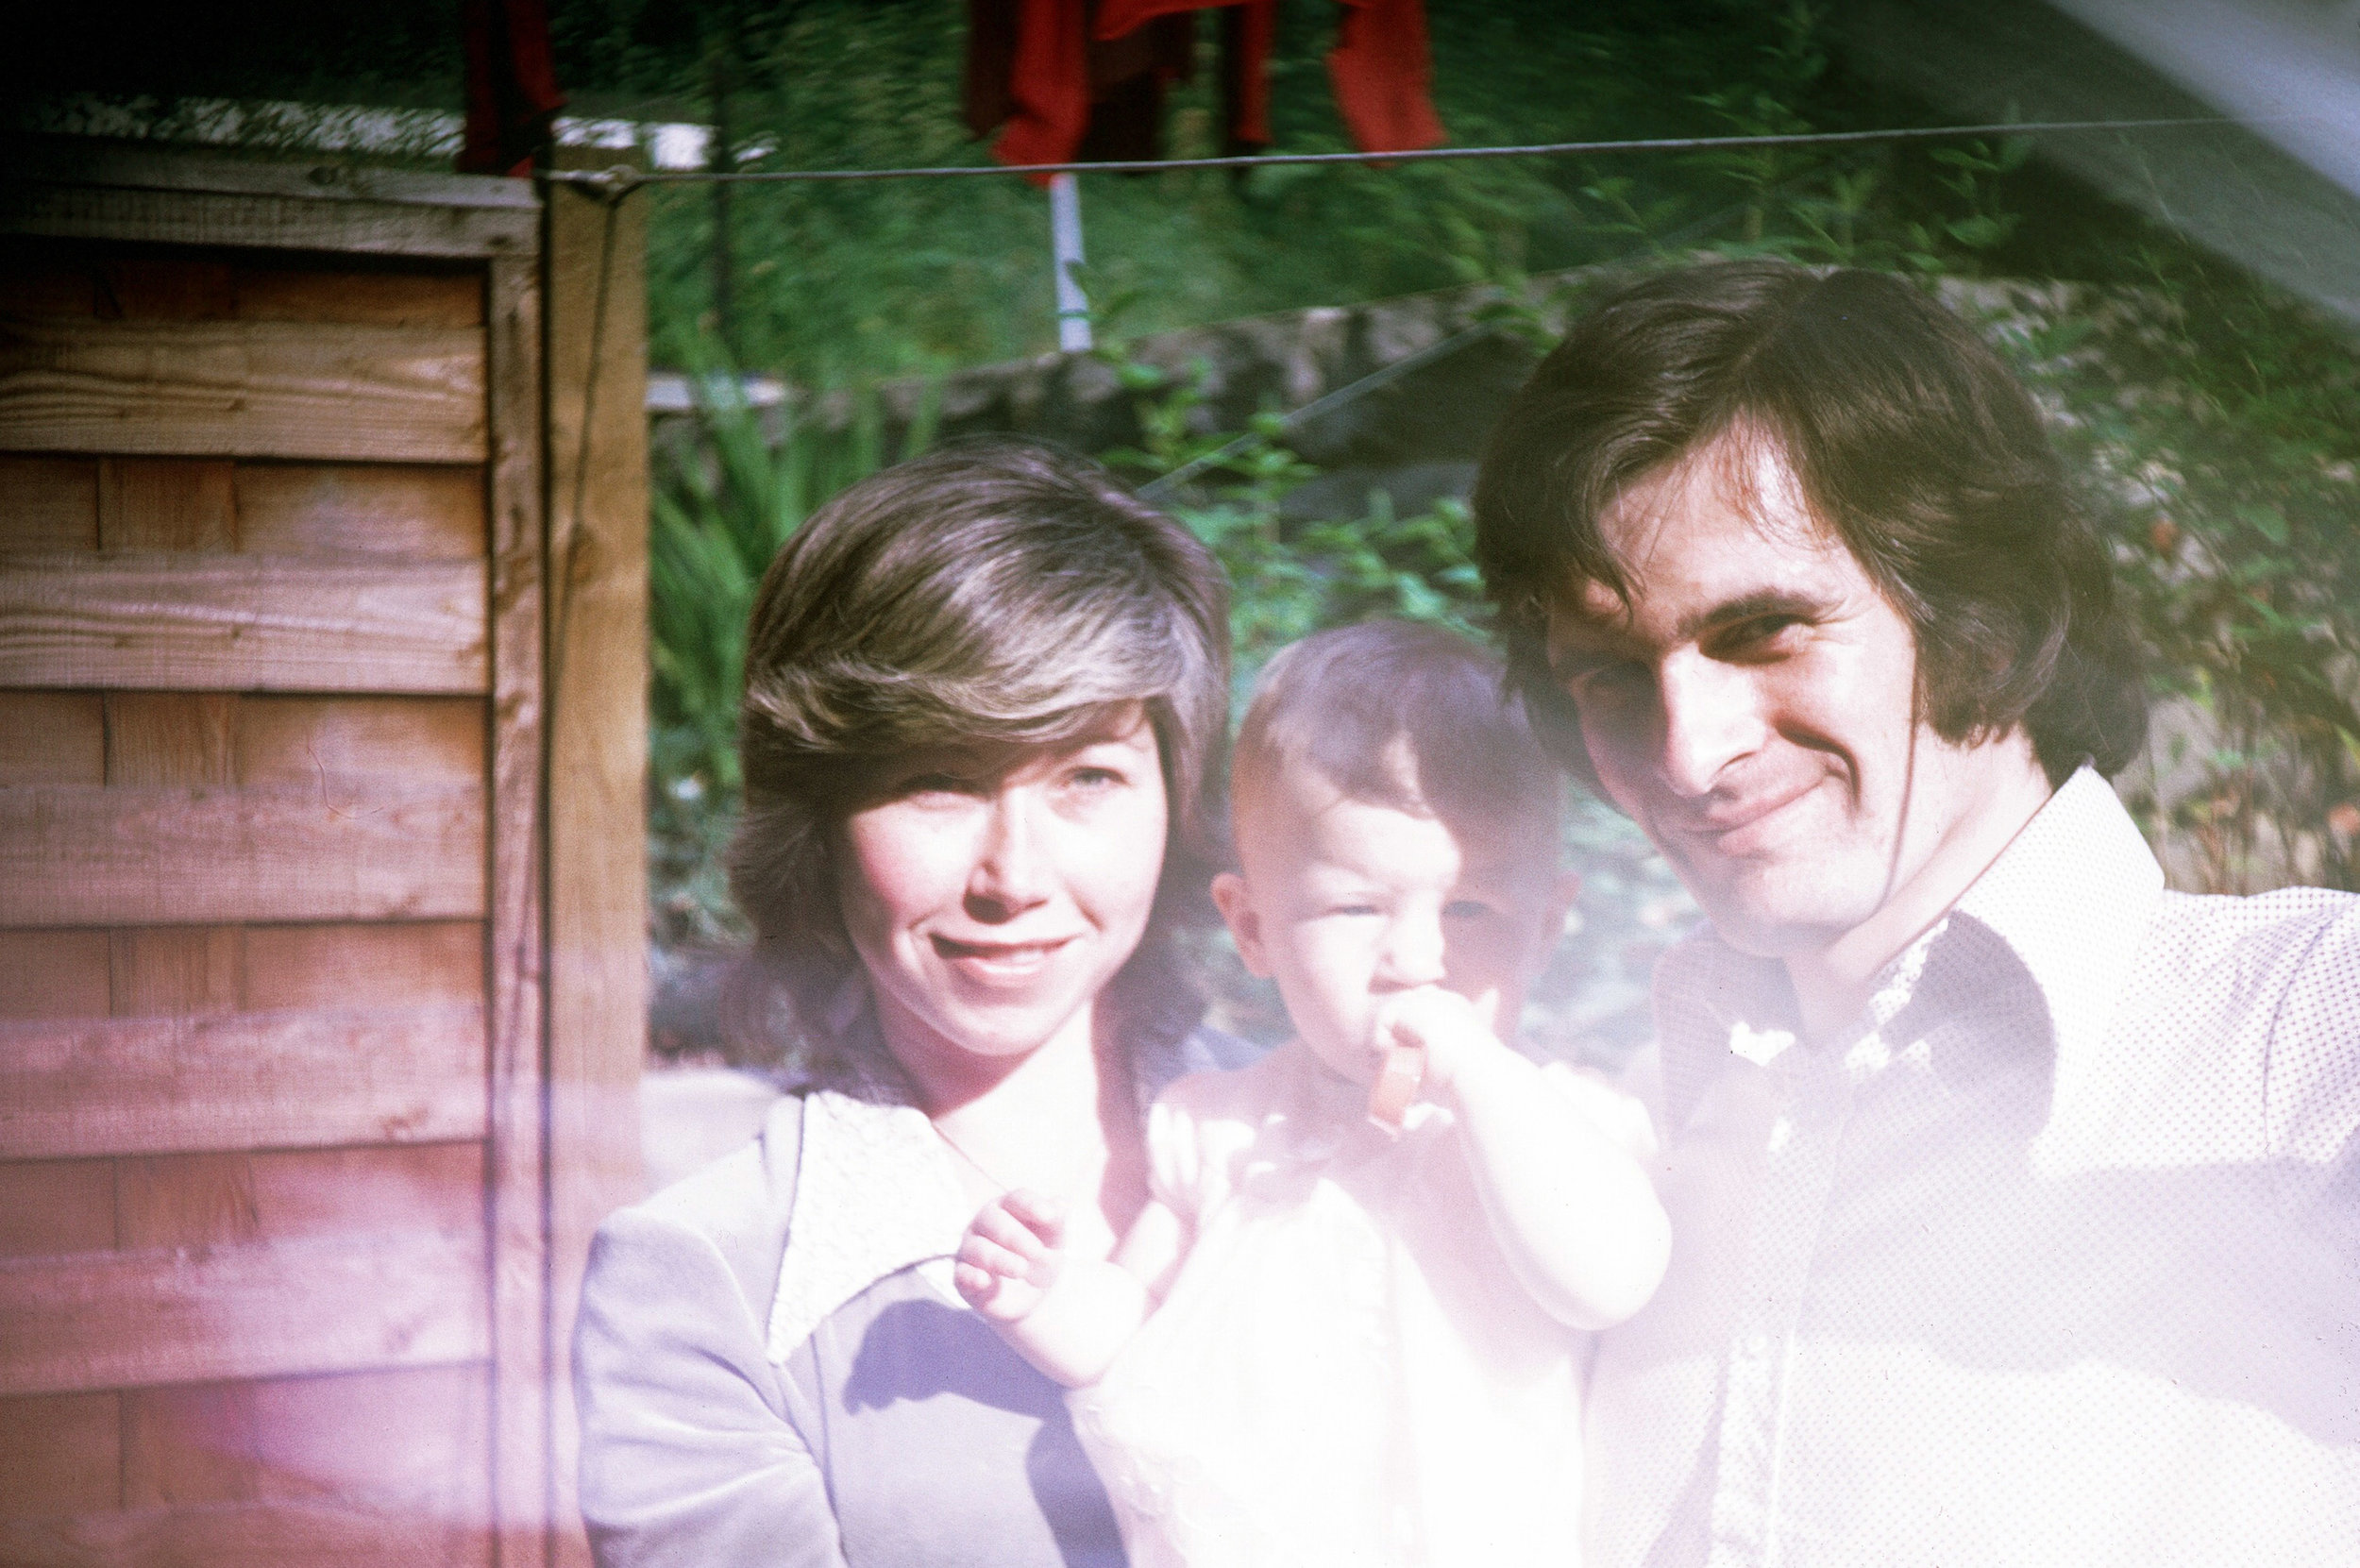 With my mom and dad.